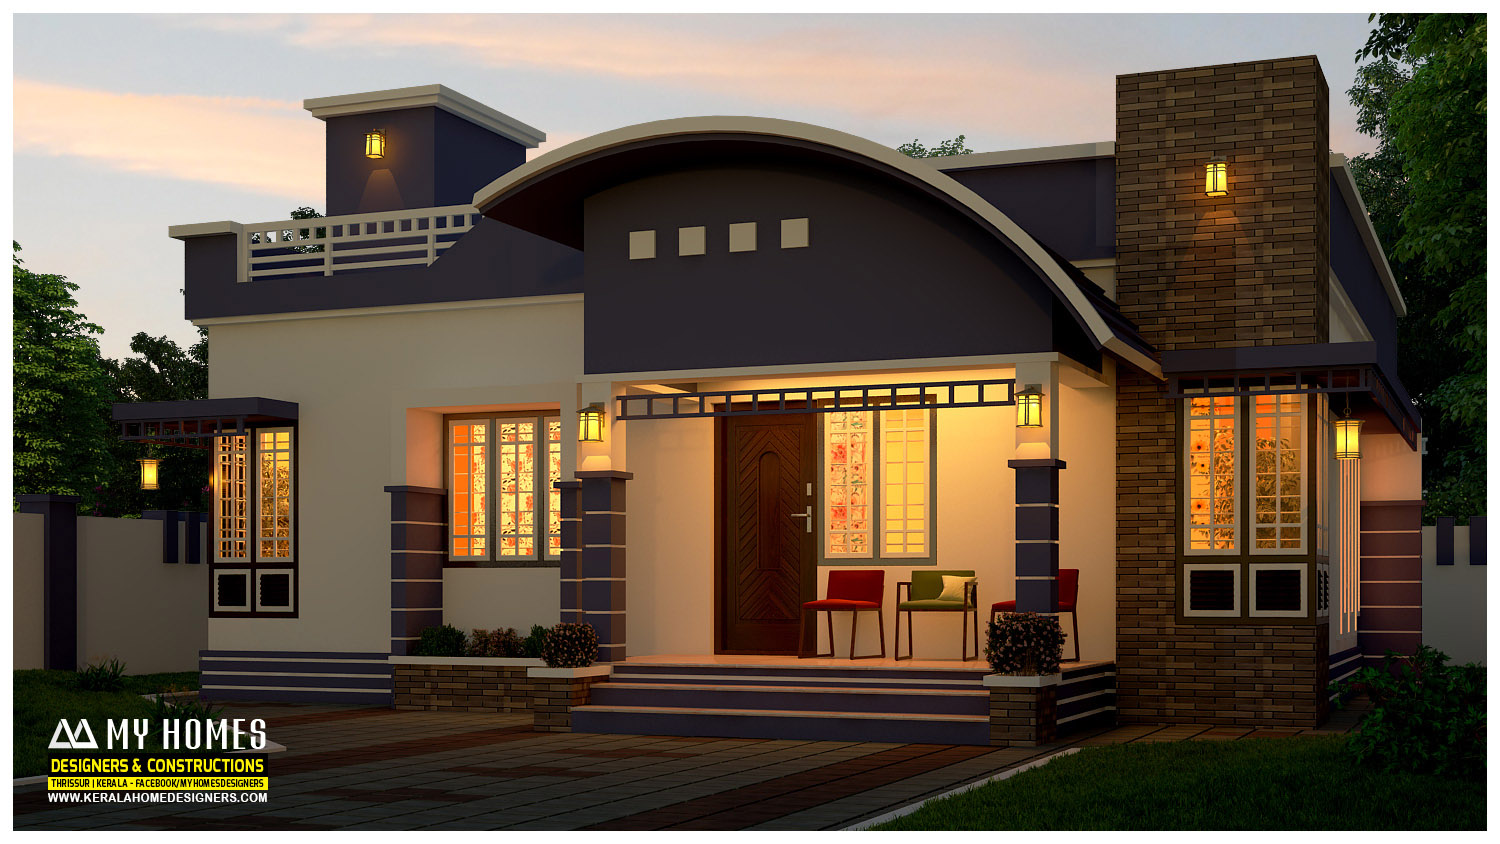 Low budget kerala home designers constructions company thrissur Low budget home design ideas